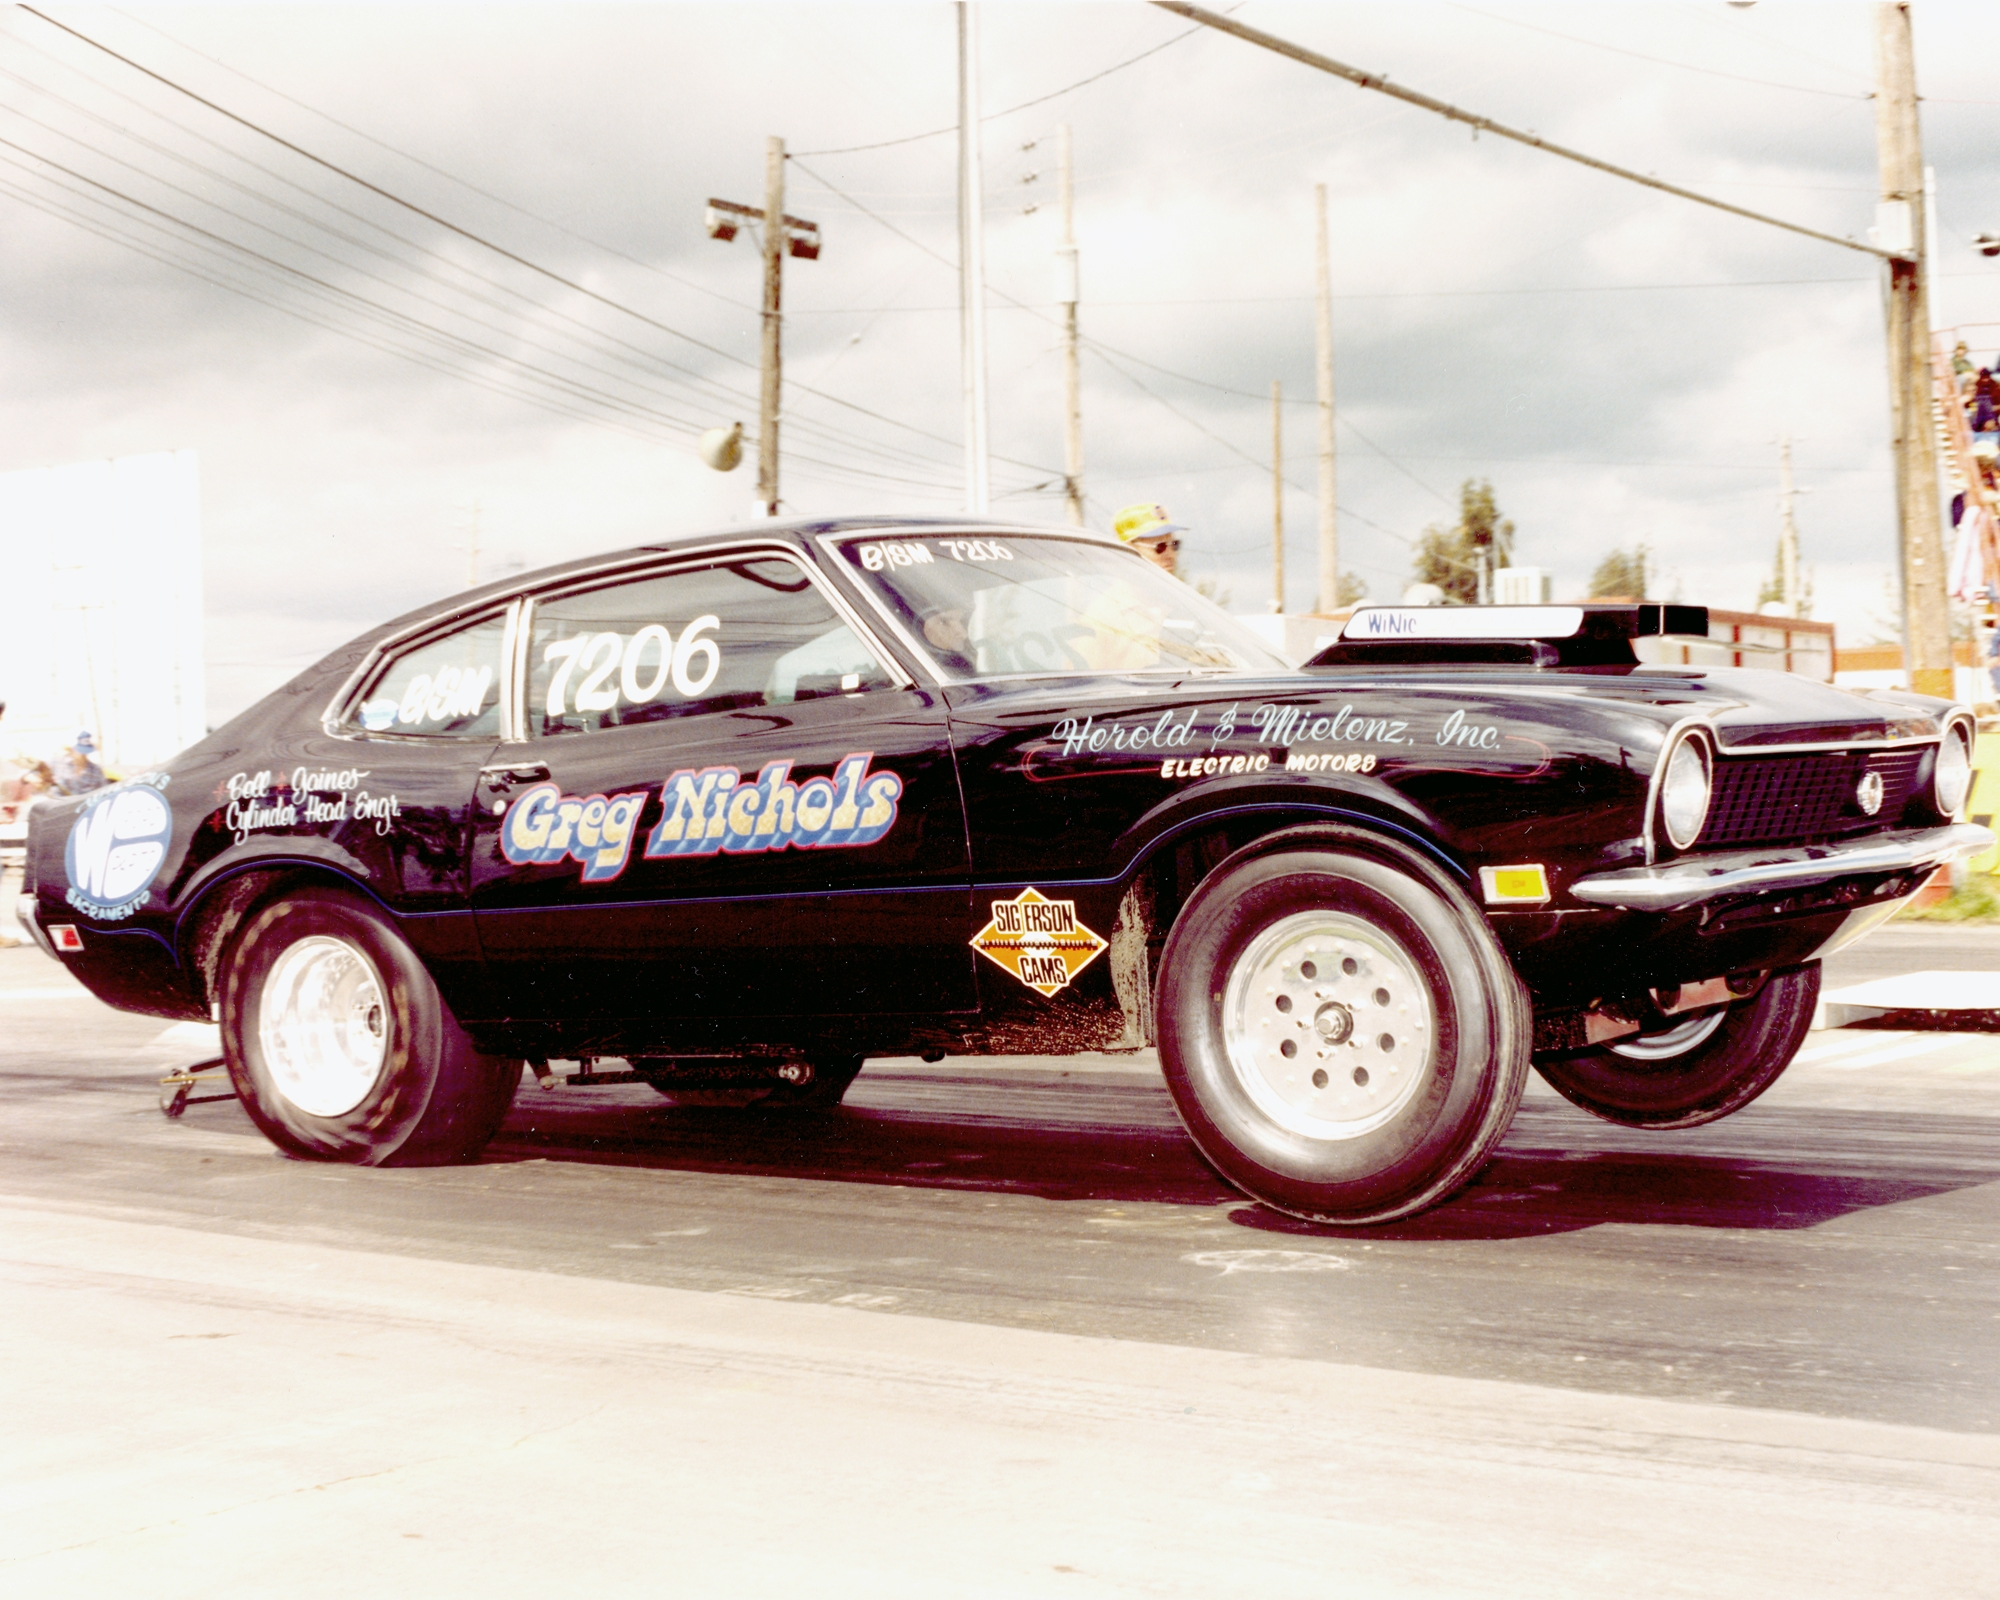 Click image for larger version  Name:Maverick wheel stand.JPG Views:53 Size:1.88 MB ID:198412